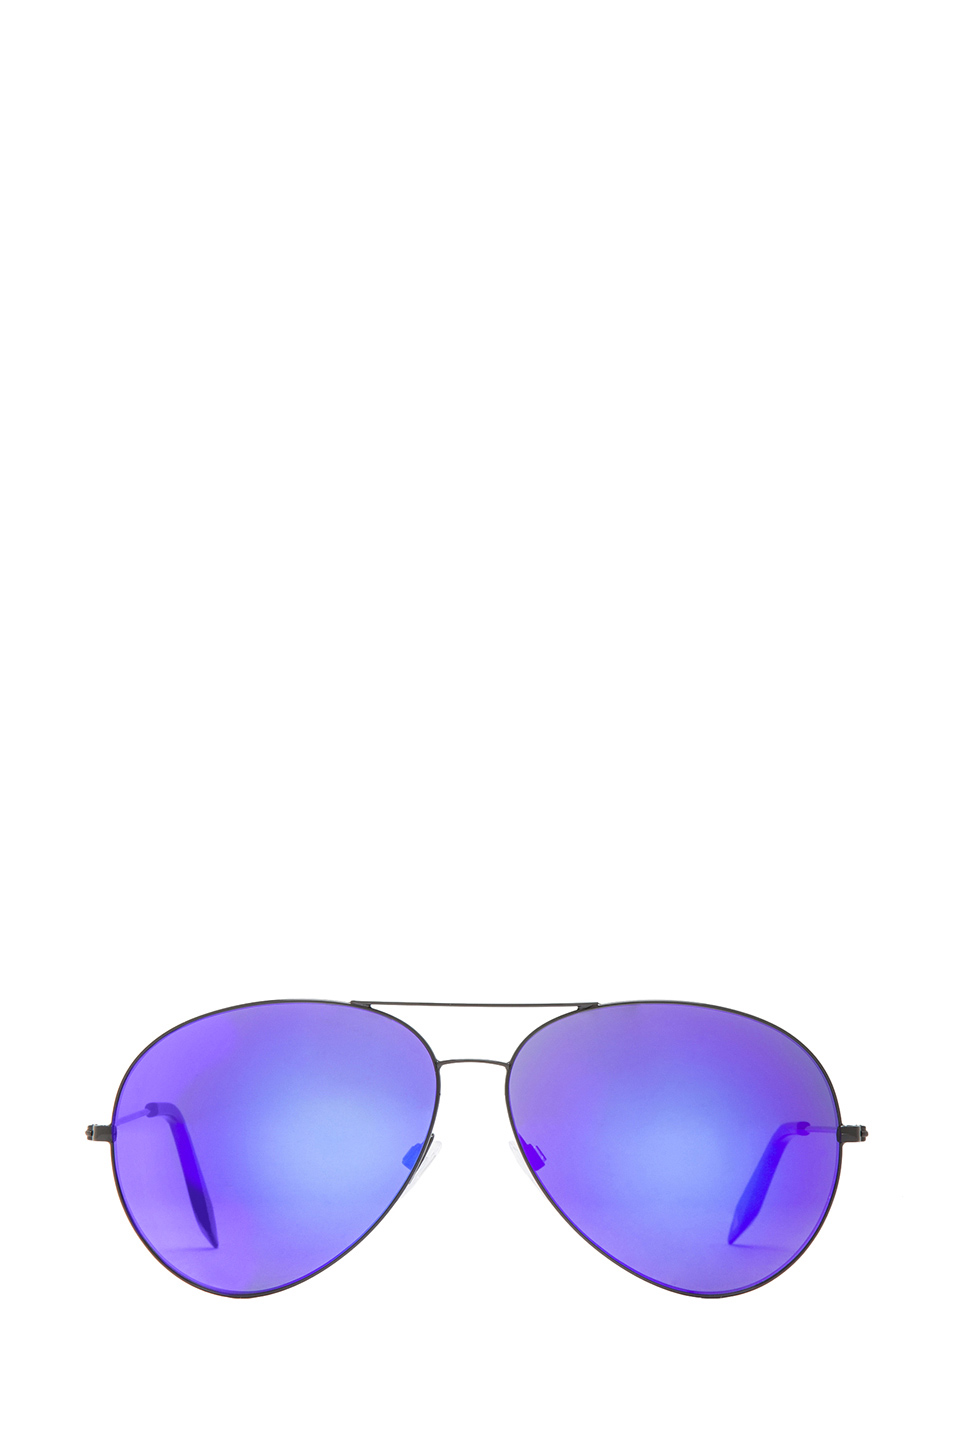 Victoria Beckham | Classic Aviator Sunglasses in Midnight Eclipse